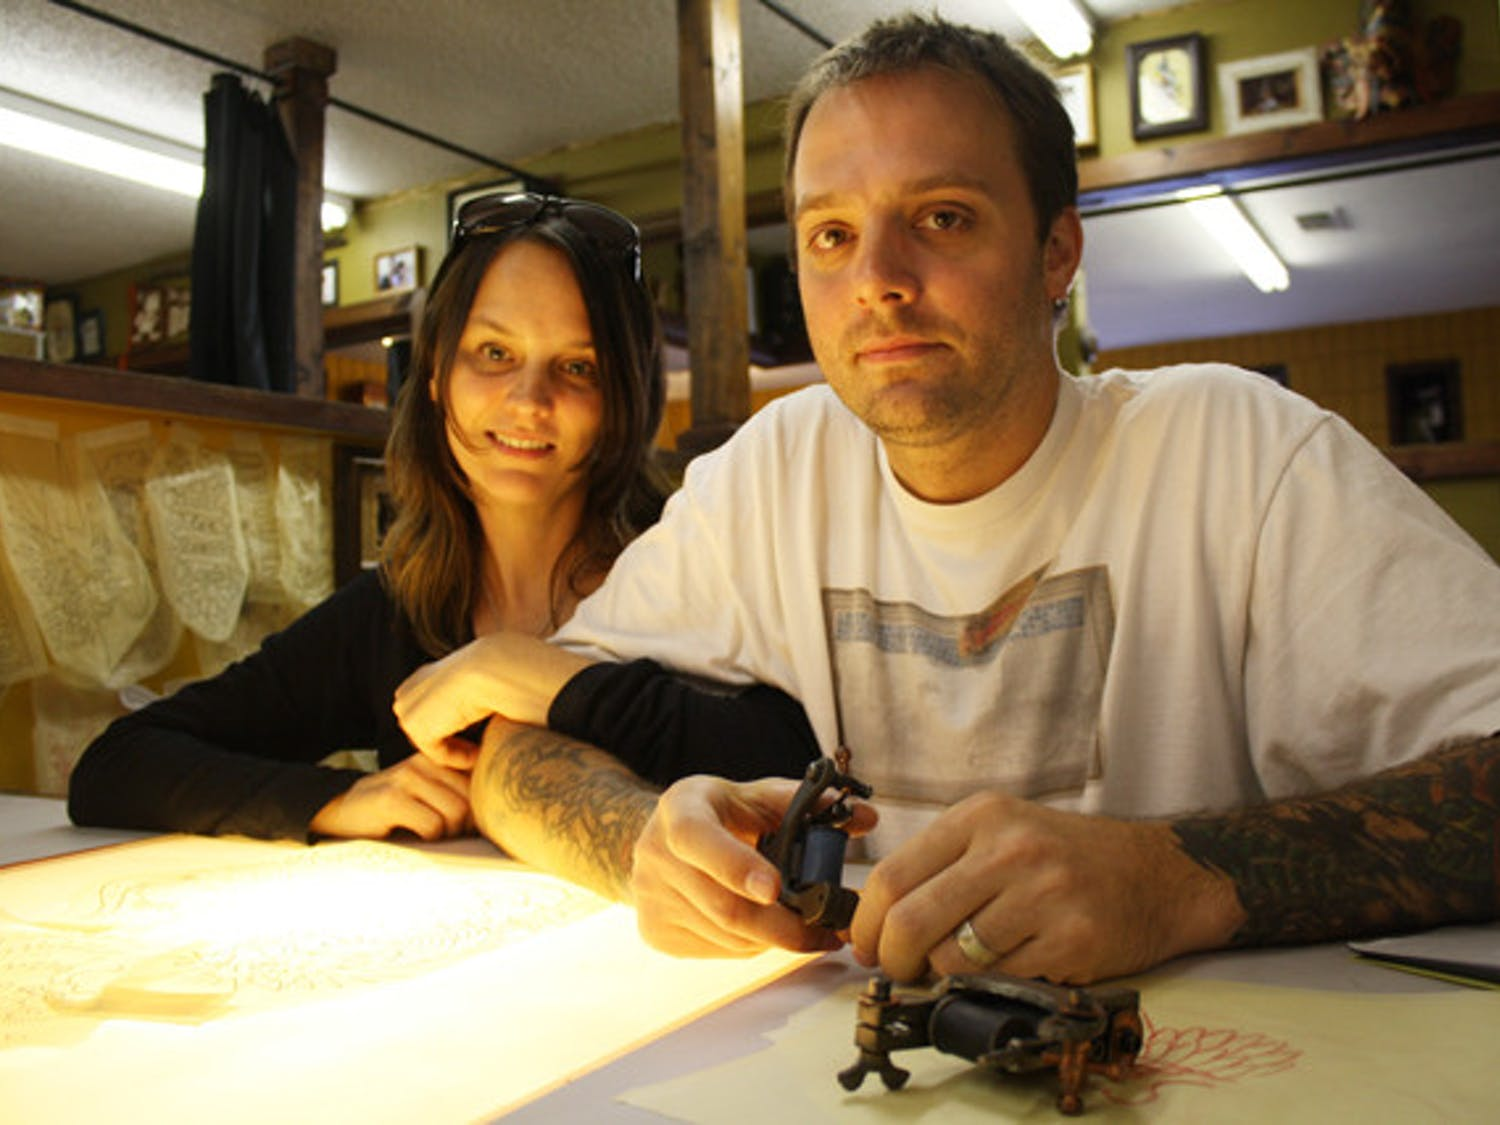 Mike Salay and his wife, Samantha, took over ownership of Anthem Tattoo Parlor on Sept. 2.